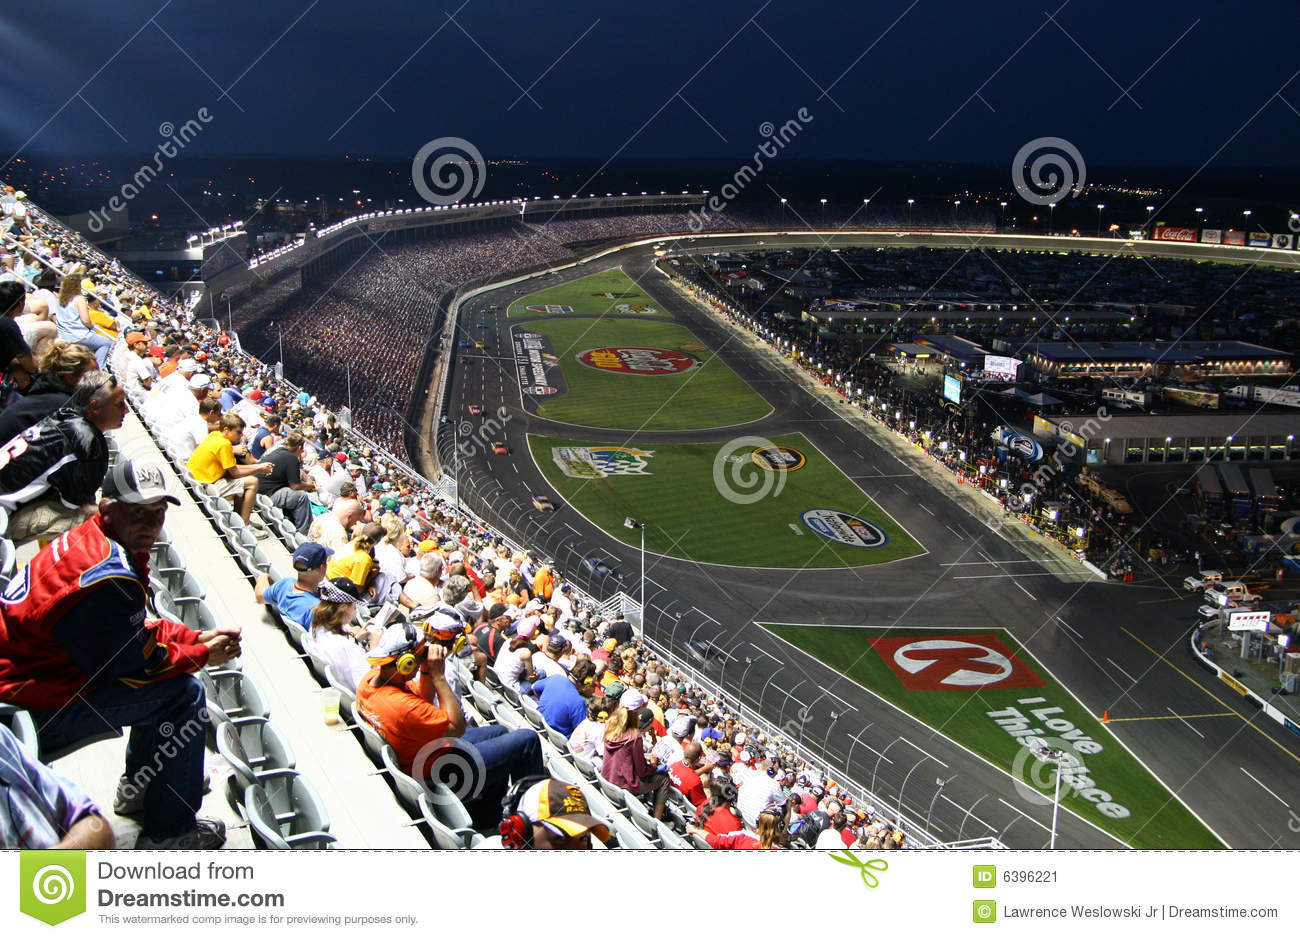 Nascar high above lms 2 editorial photo image 6396221 for Lowe s motor speedway